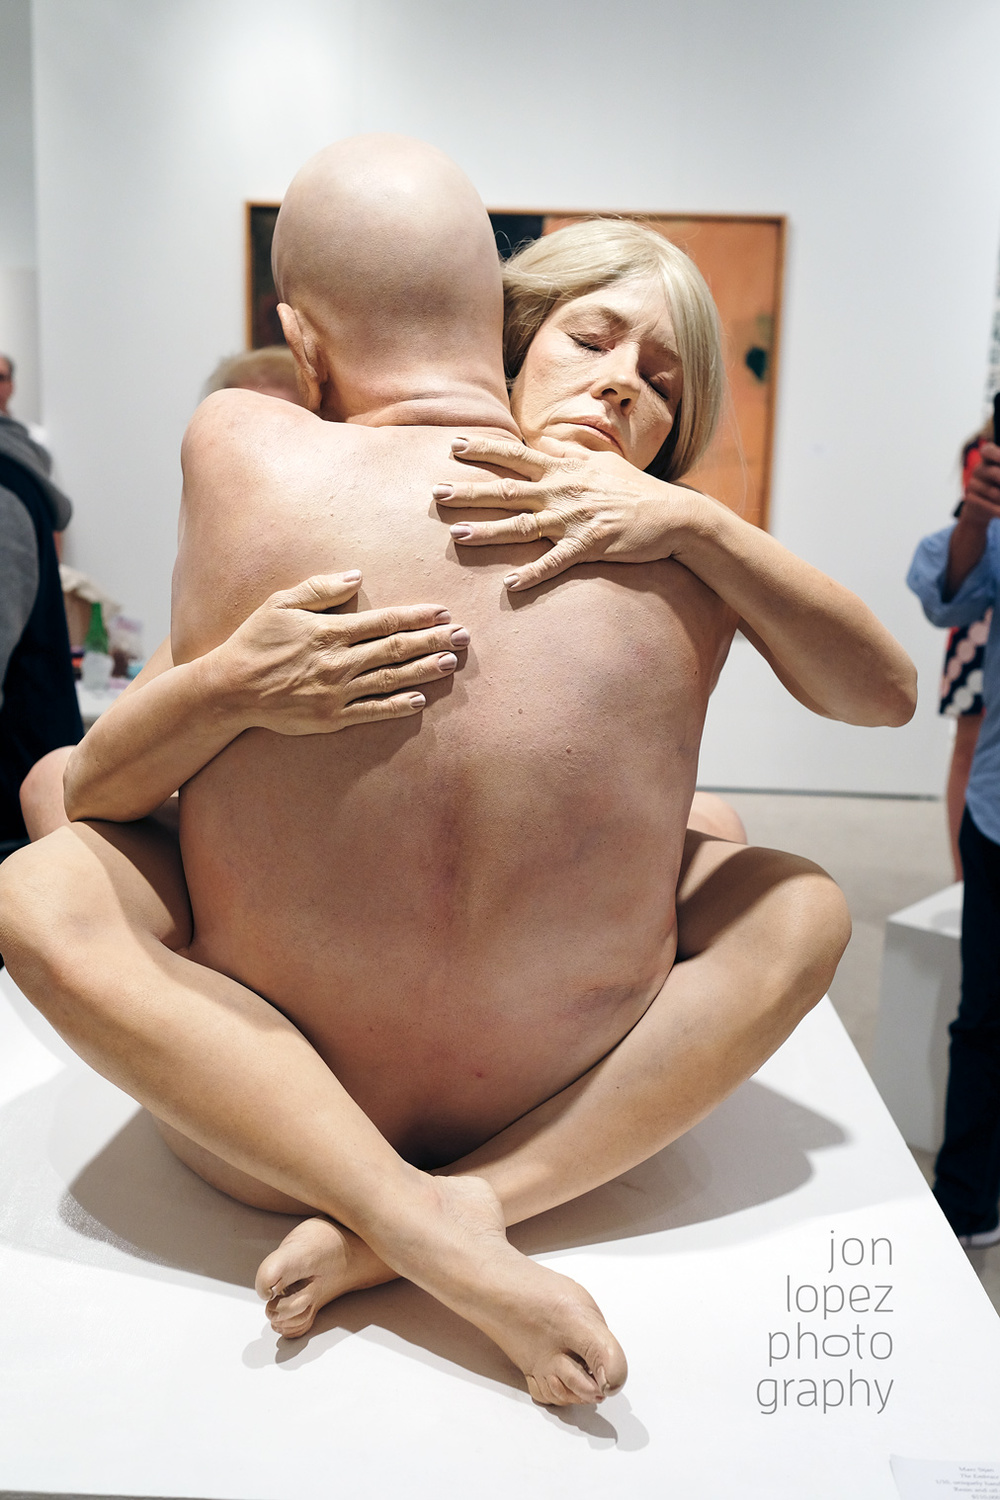 The artwork featured at Art Basel 2014 was nothing short of incredible.